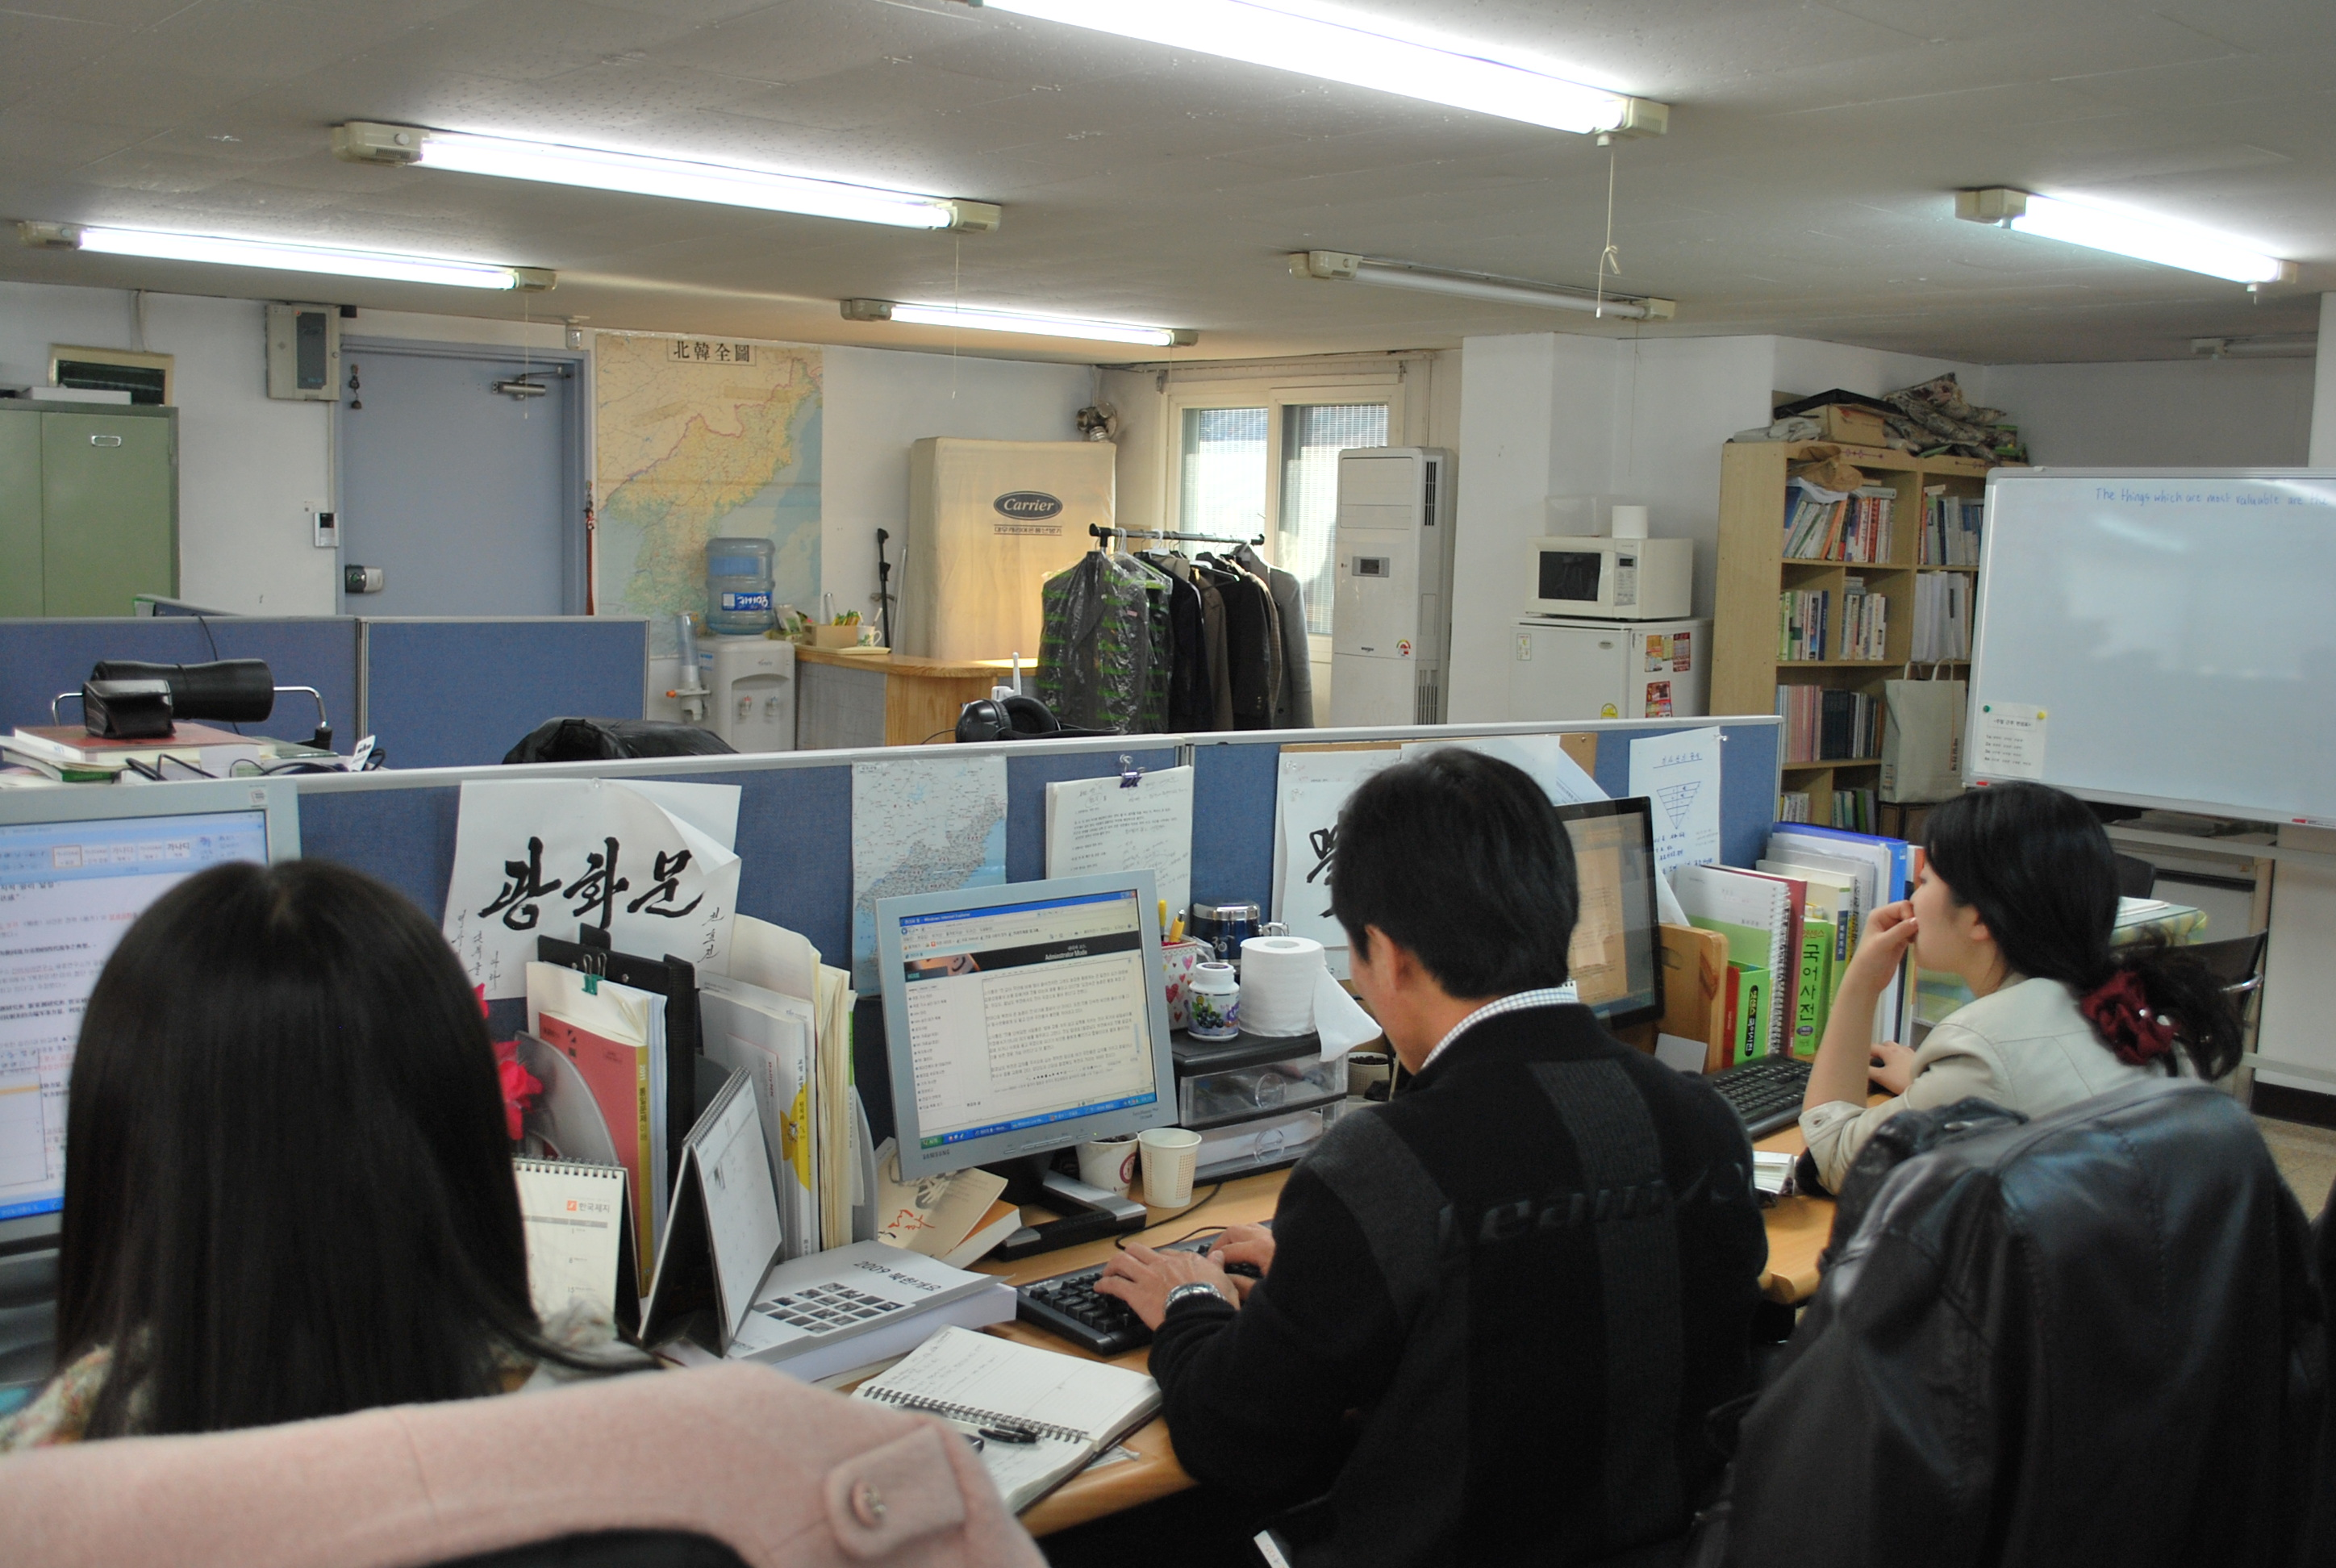 Byoung-Keun (middle) at work at the DailyNK office in Seoul. Photo by Simon Roughneen.